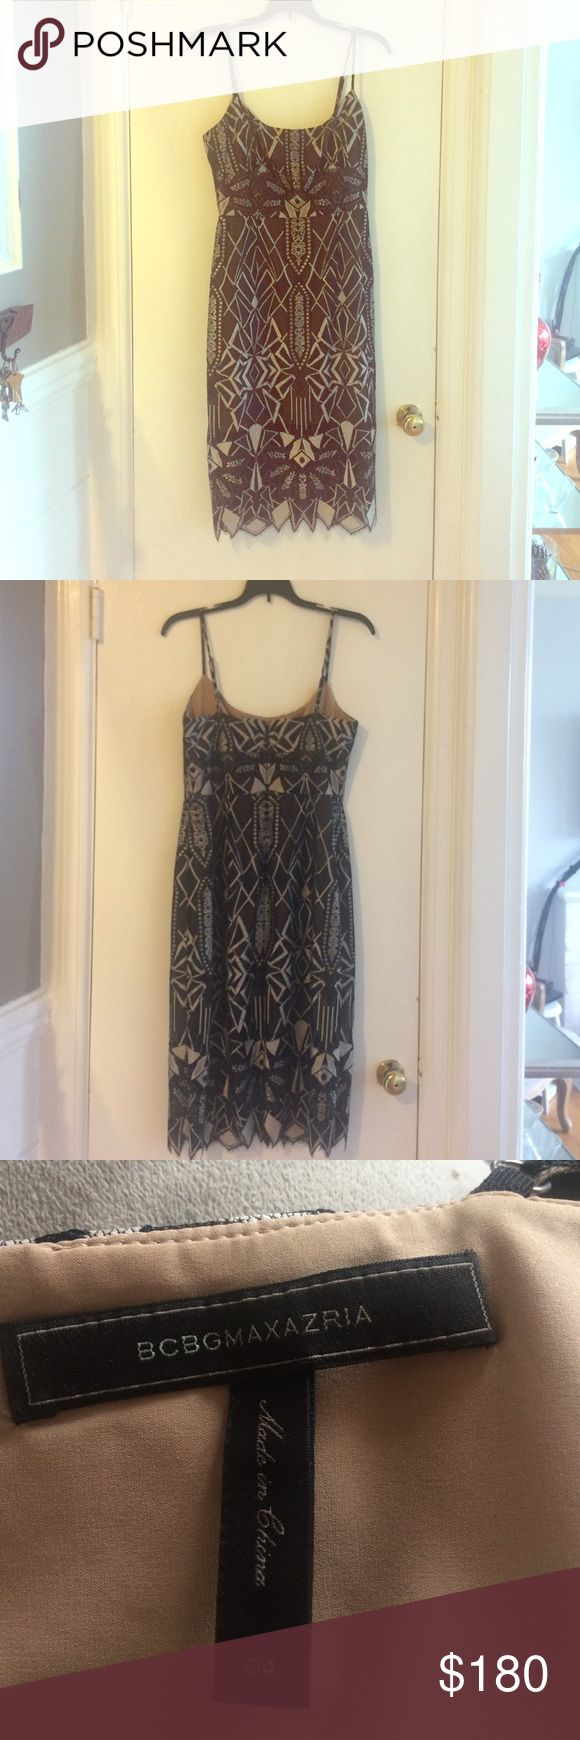 BCBG Max Azria dress BCBG Max Azria dress, size 4. Excellent condition, only worn once. BCBGMaxAzria Dresses